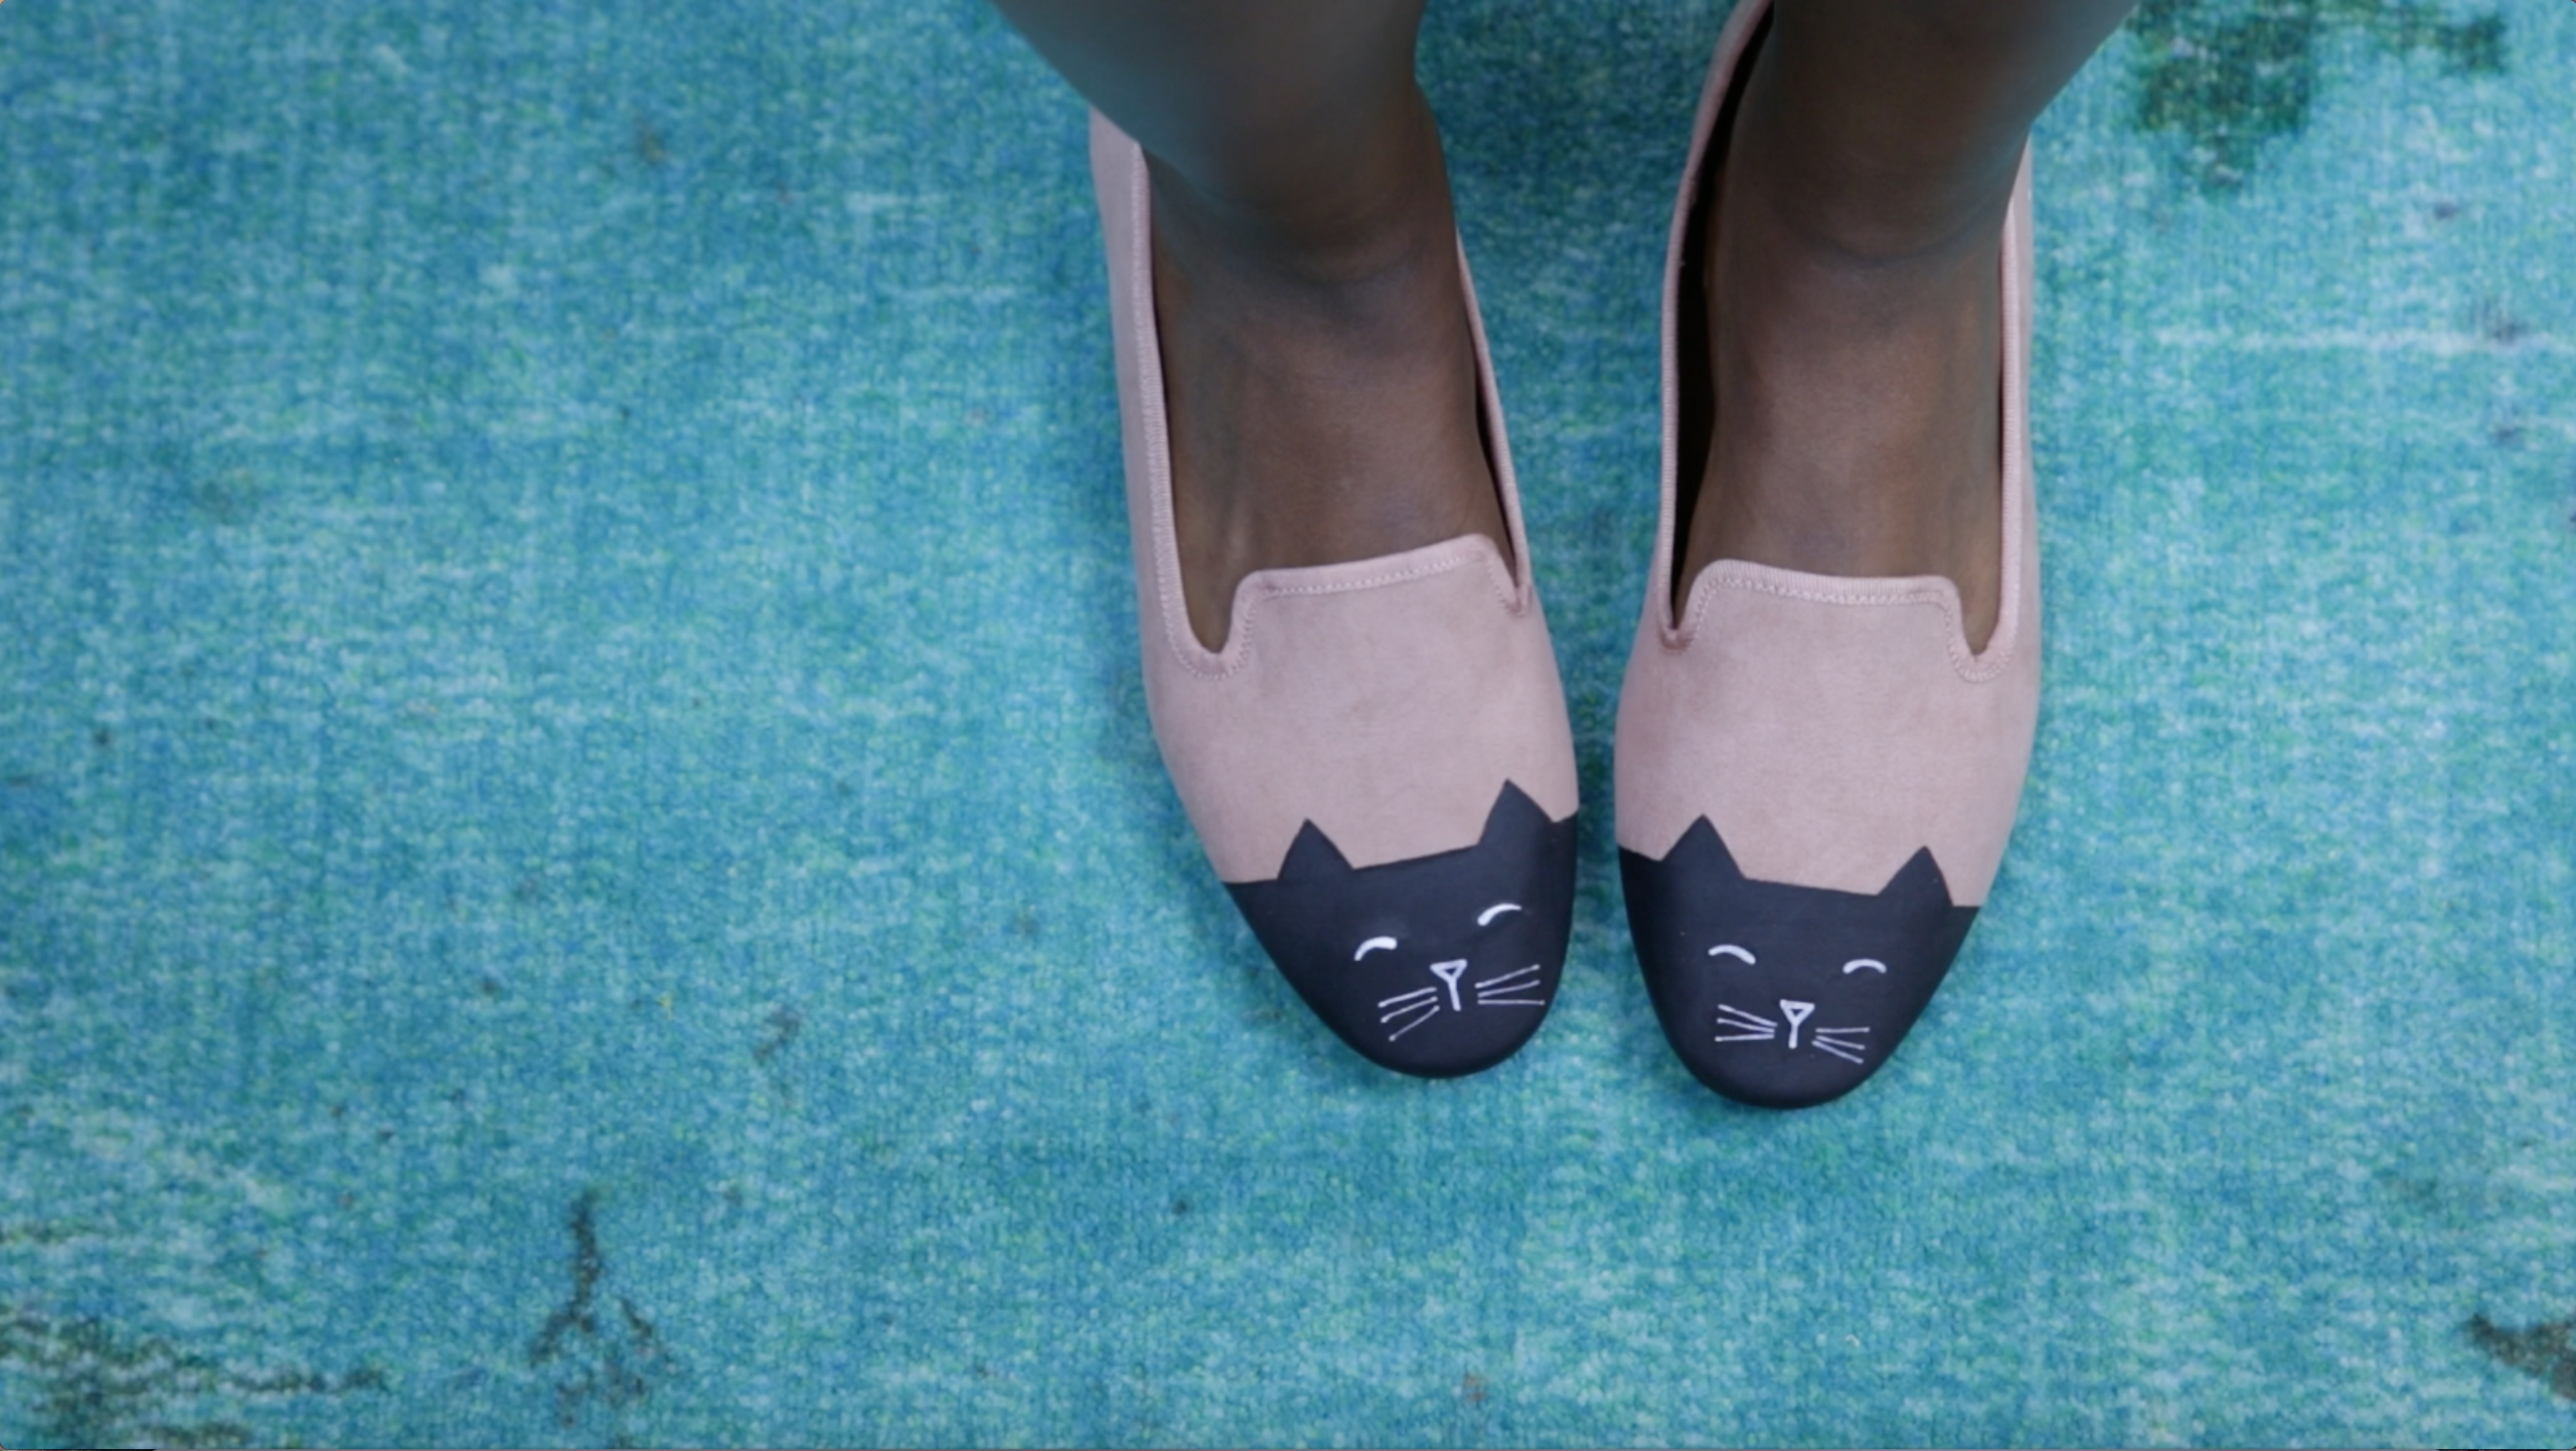 These DIY cat flats are paw-sitively adorable